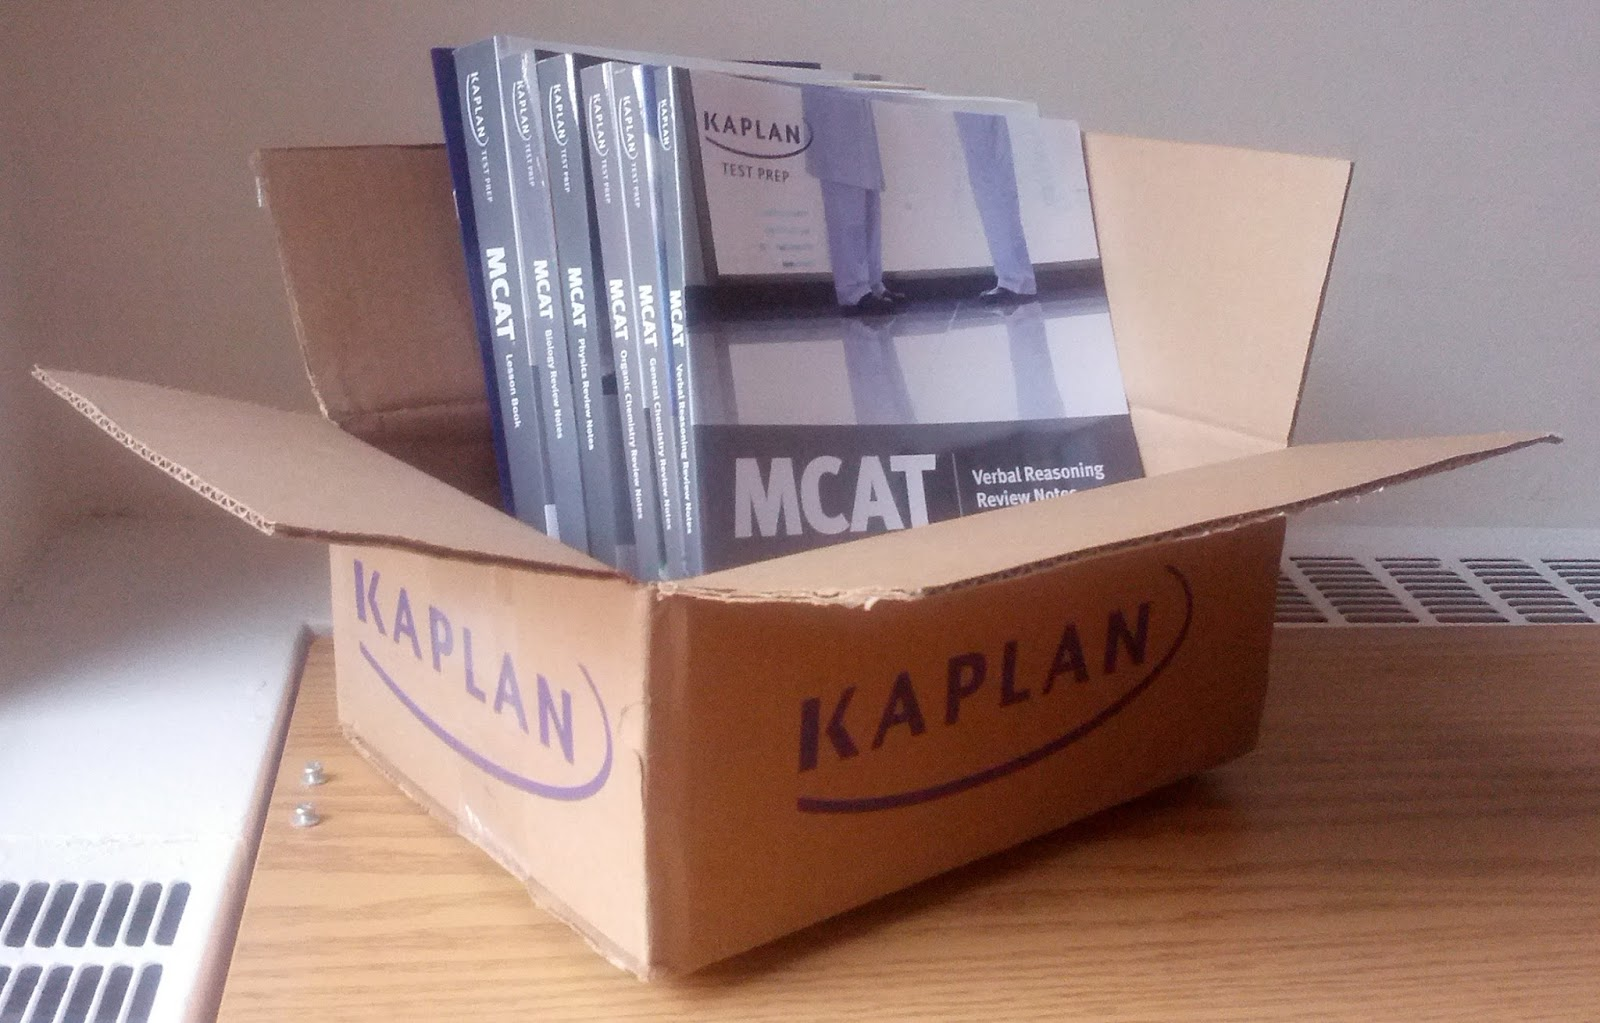 US Medical Schools for International Students: Kaplan's